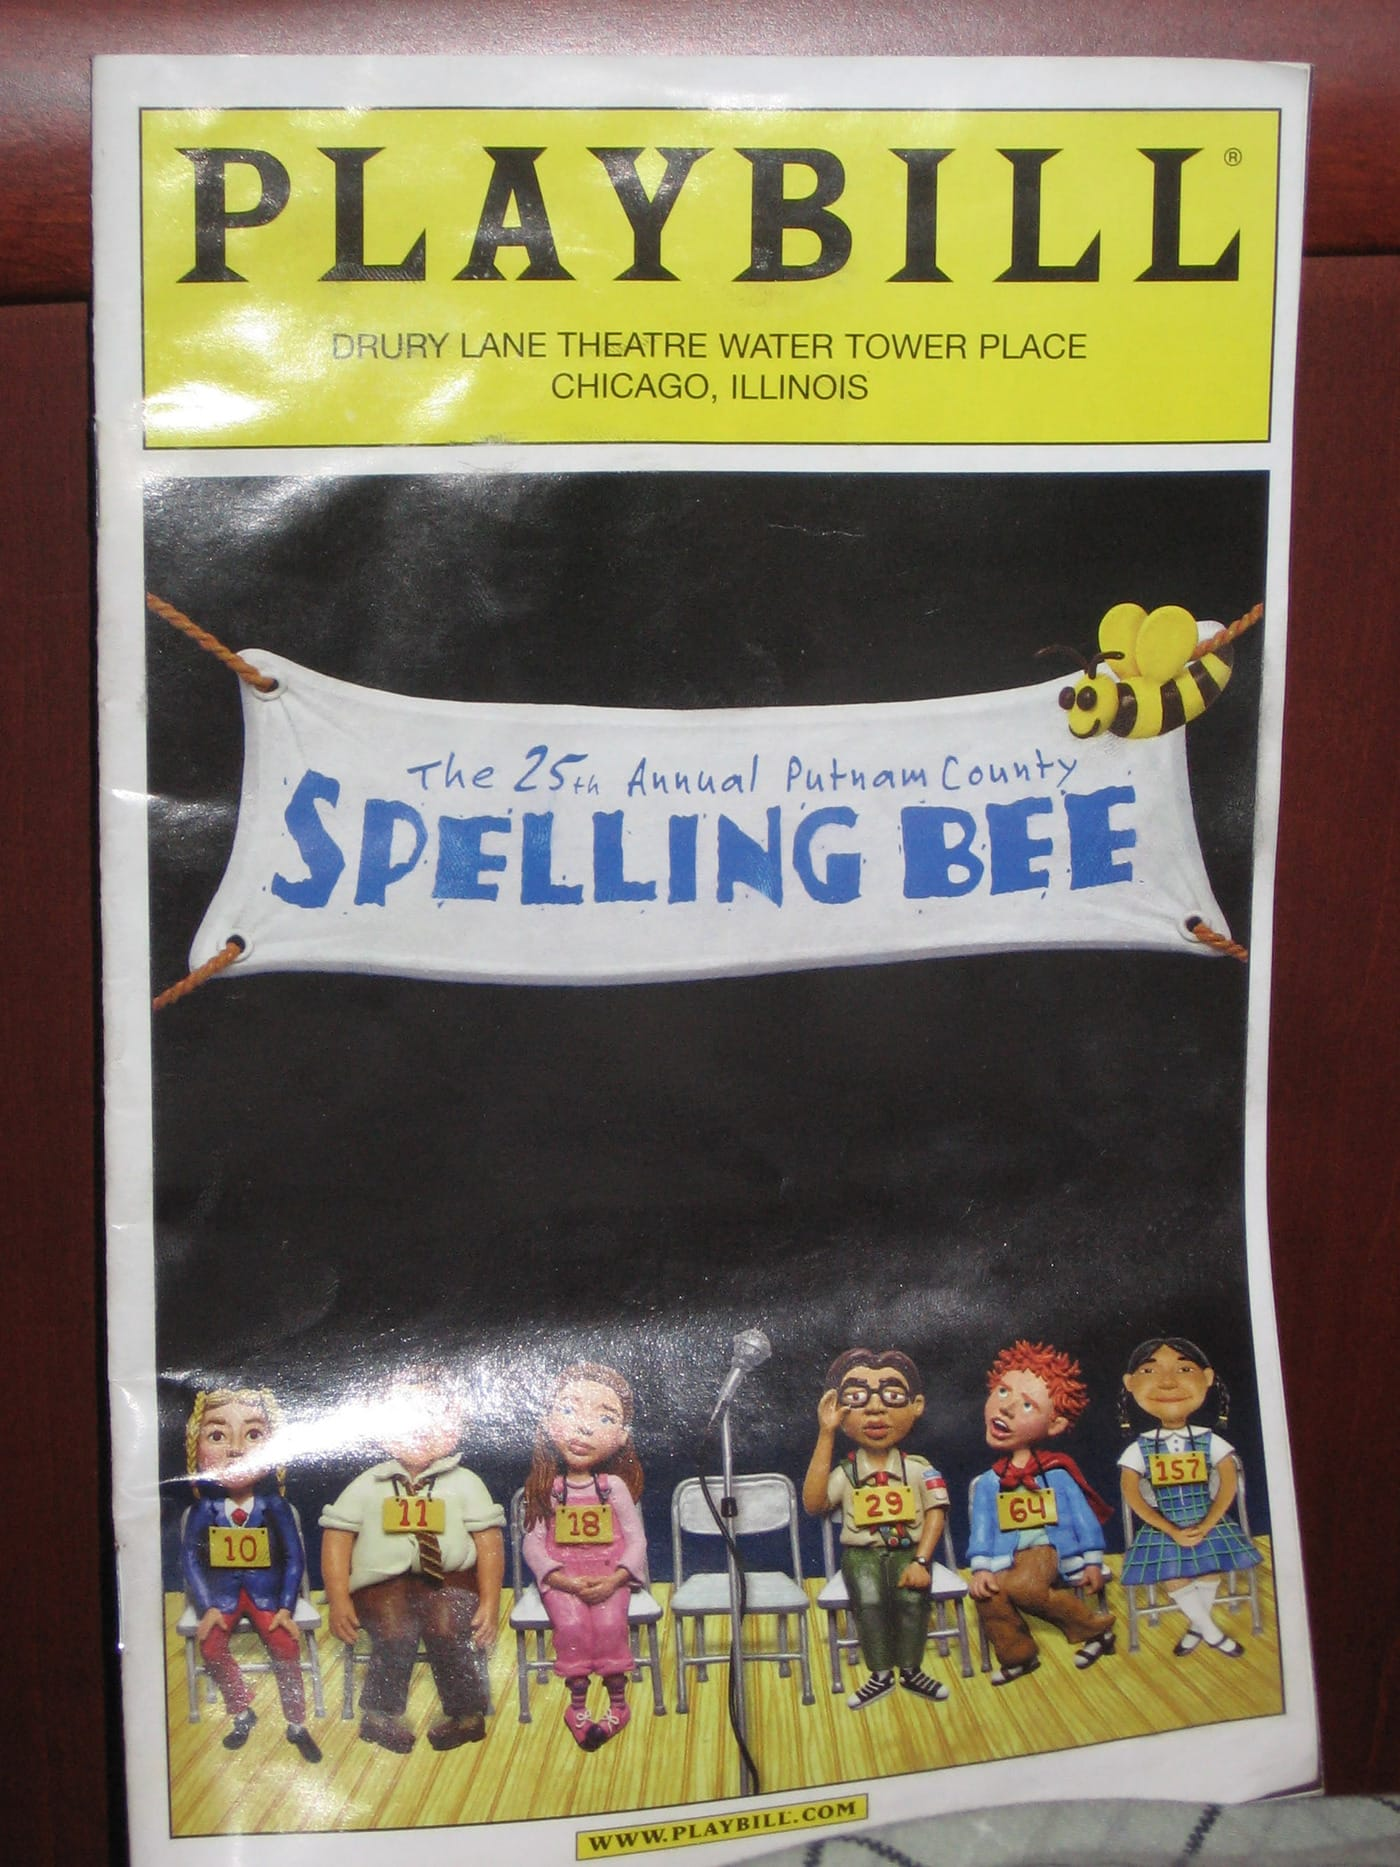 25th Annual Putnam County Spelling Bee program in Chicago